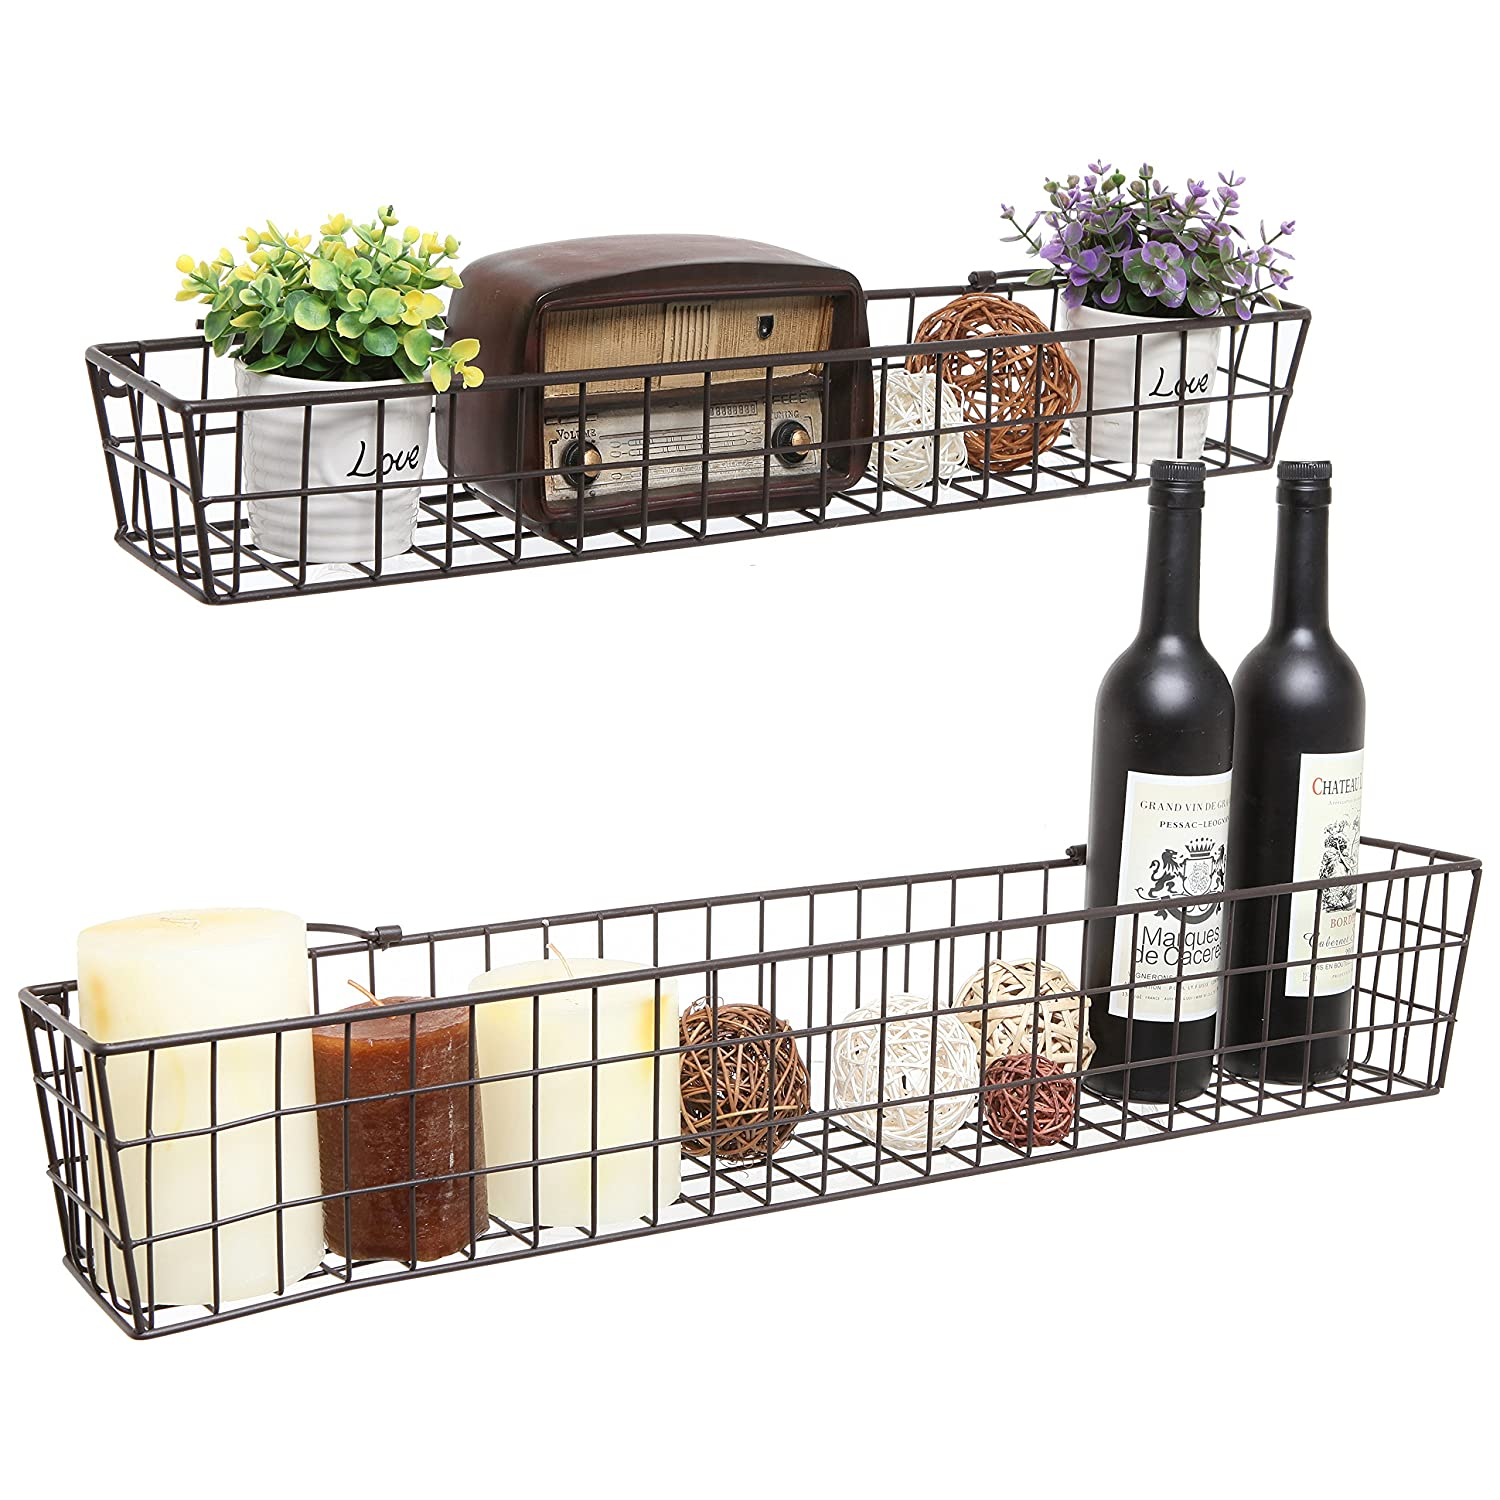 Etonnant Amazon.com: Set Of 2 Brown Country Rustic Wall Mounted Openwork Metal Wire Storage  Basket Shelves / Display Racks: Home U0026 Kitchen